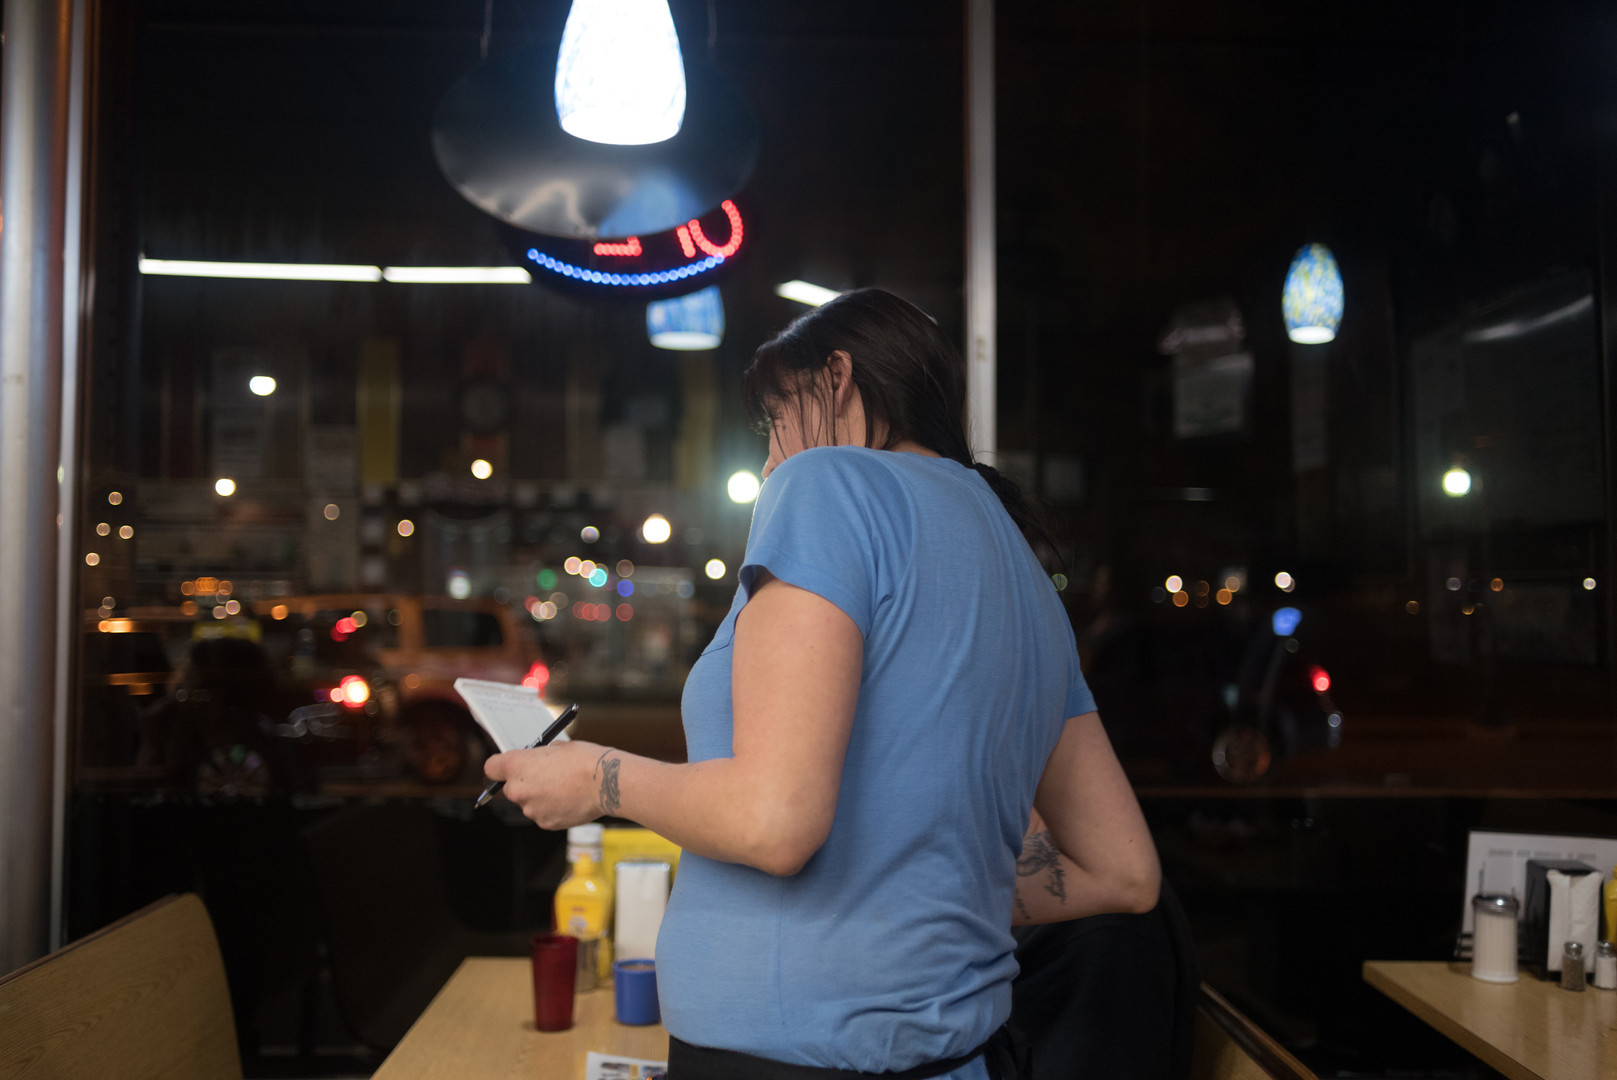 6:37 p.m. Candice takes a regular's order.